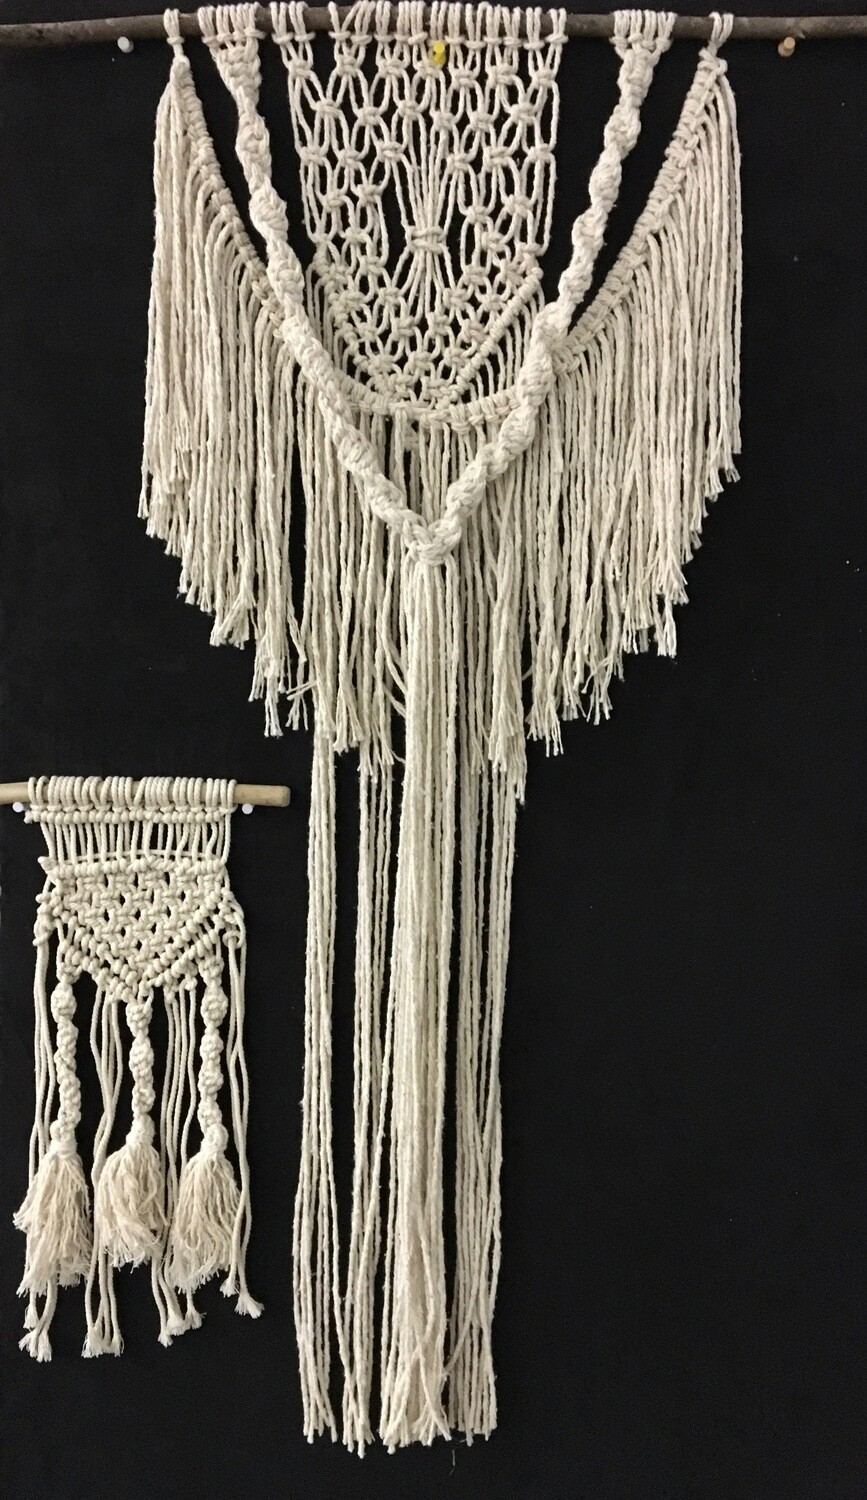 MACRAME  One-day Workshop -  Saturday NOVEMBER 16TH, 2019  MACRAME WALL HANGERS.